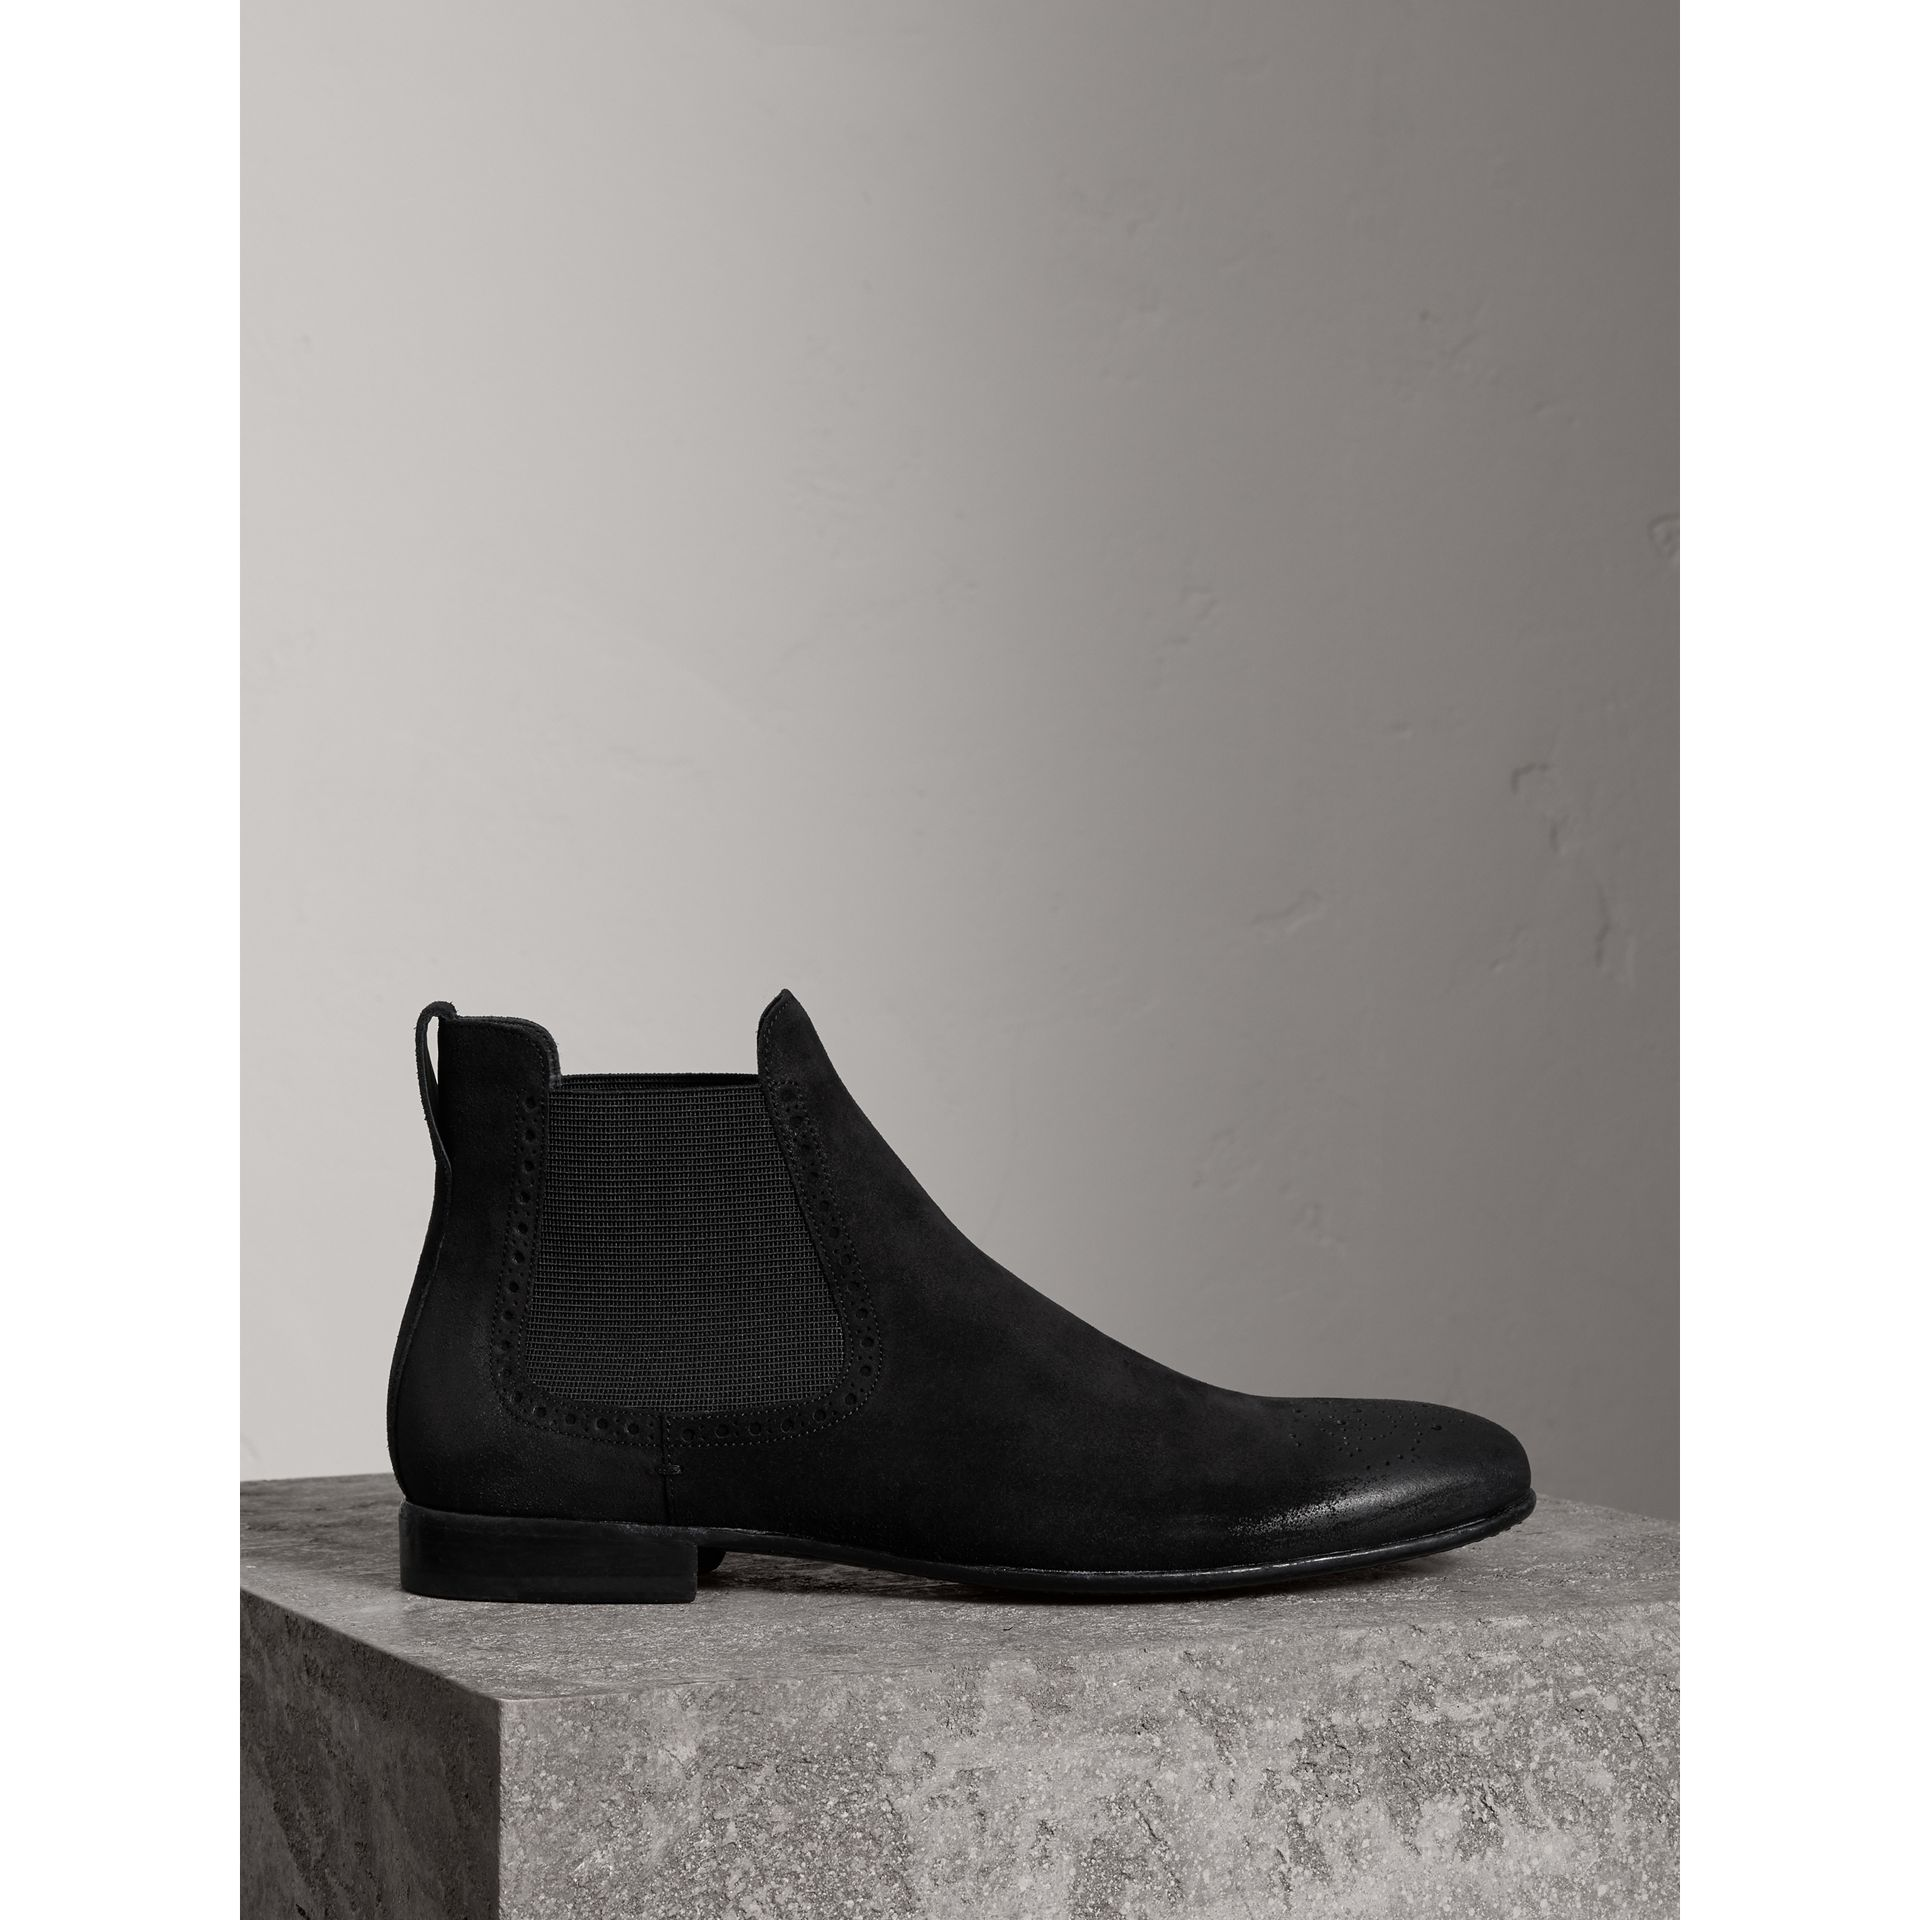 Burberry Black Brogue Detail Suede Chelsea Boots